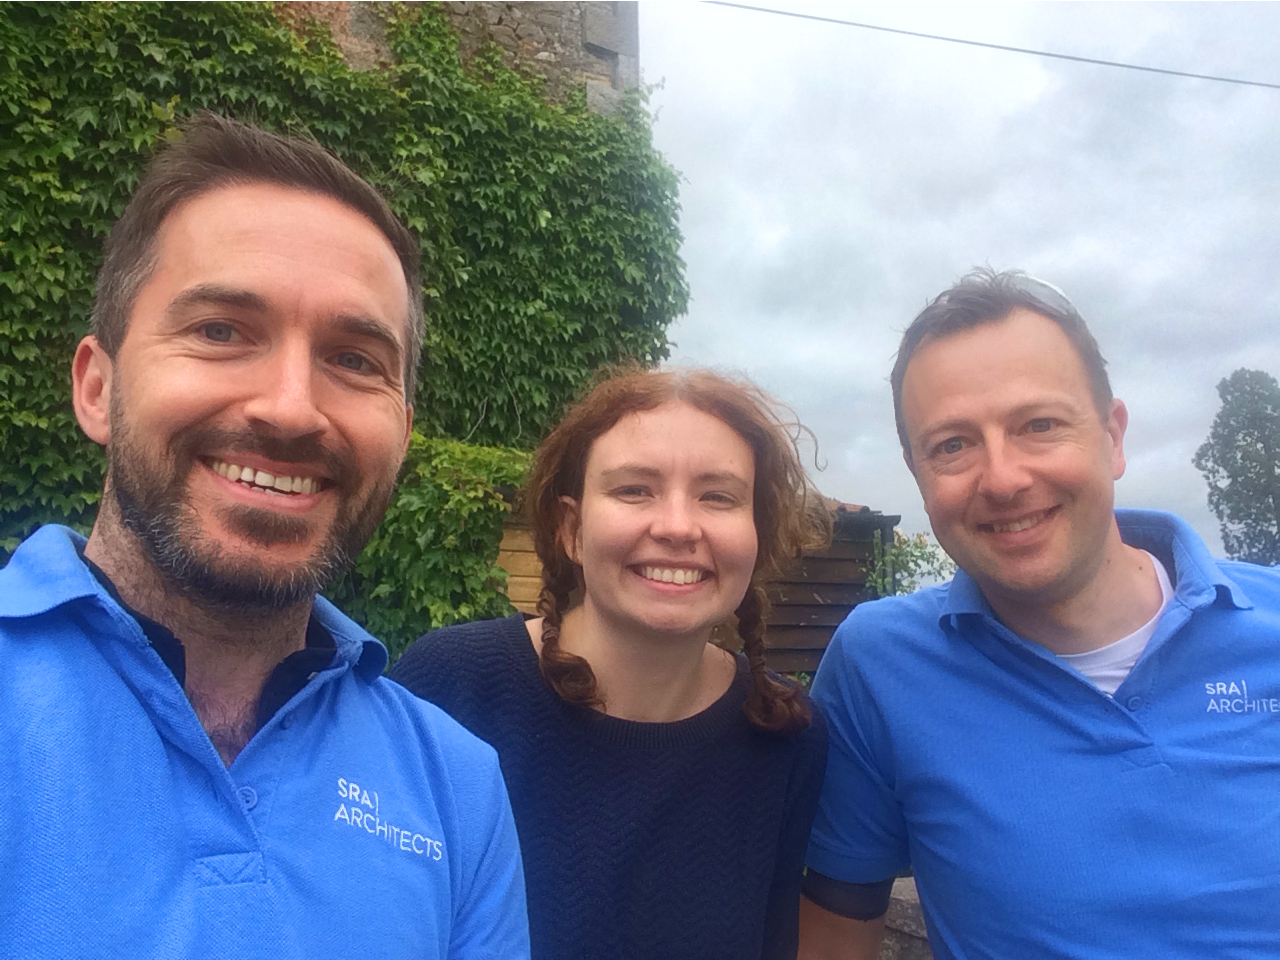 SRA Team (from left to right): Jonathan Crossley, Emma McDermott, Garry Davies